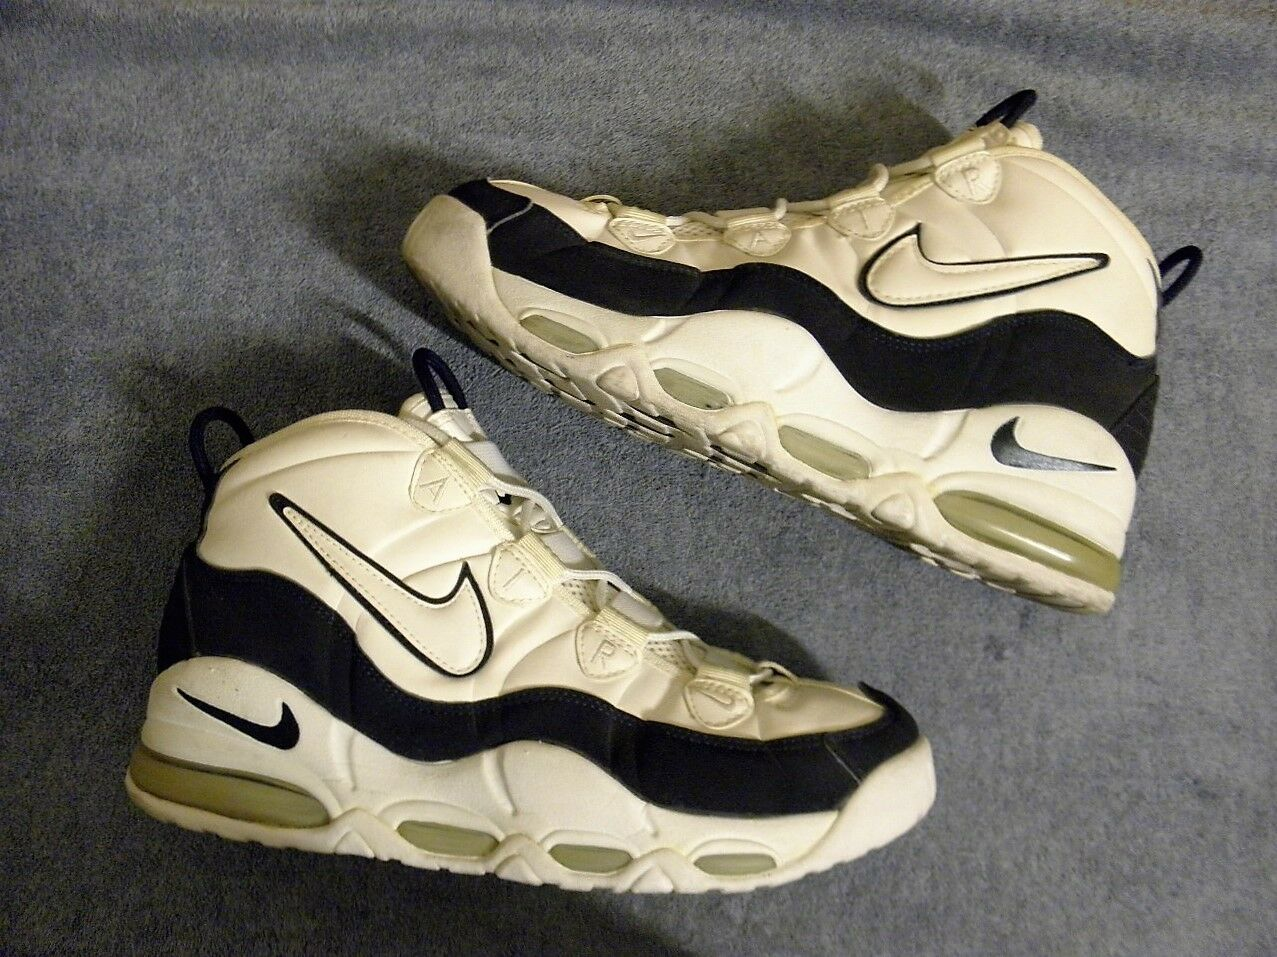 Nike Air Max Uptempo ORIGINAL 1995 '95 Vintage size 11 OG Box Scottie Pippen New shoes for men and women, limited time discount